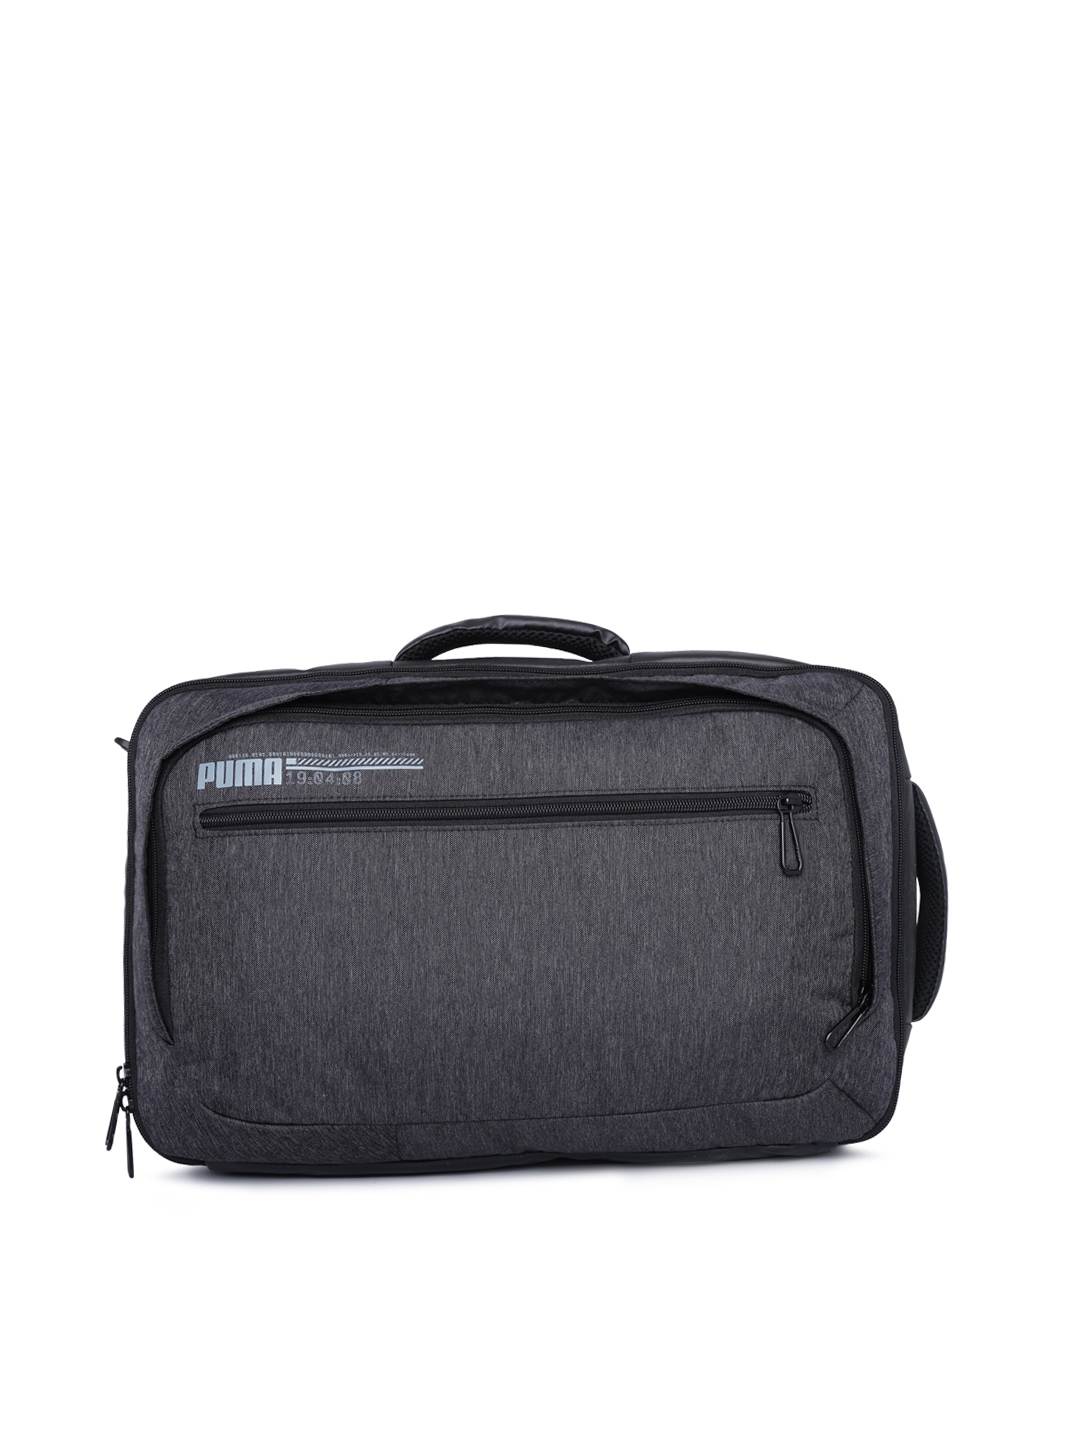 7aa97820f17 Puma Bag - Buy Puma Bags Online in India   Myntra